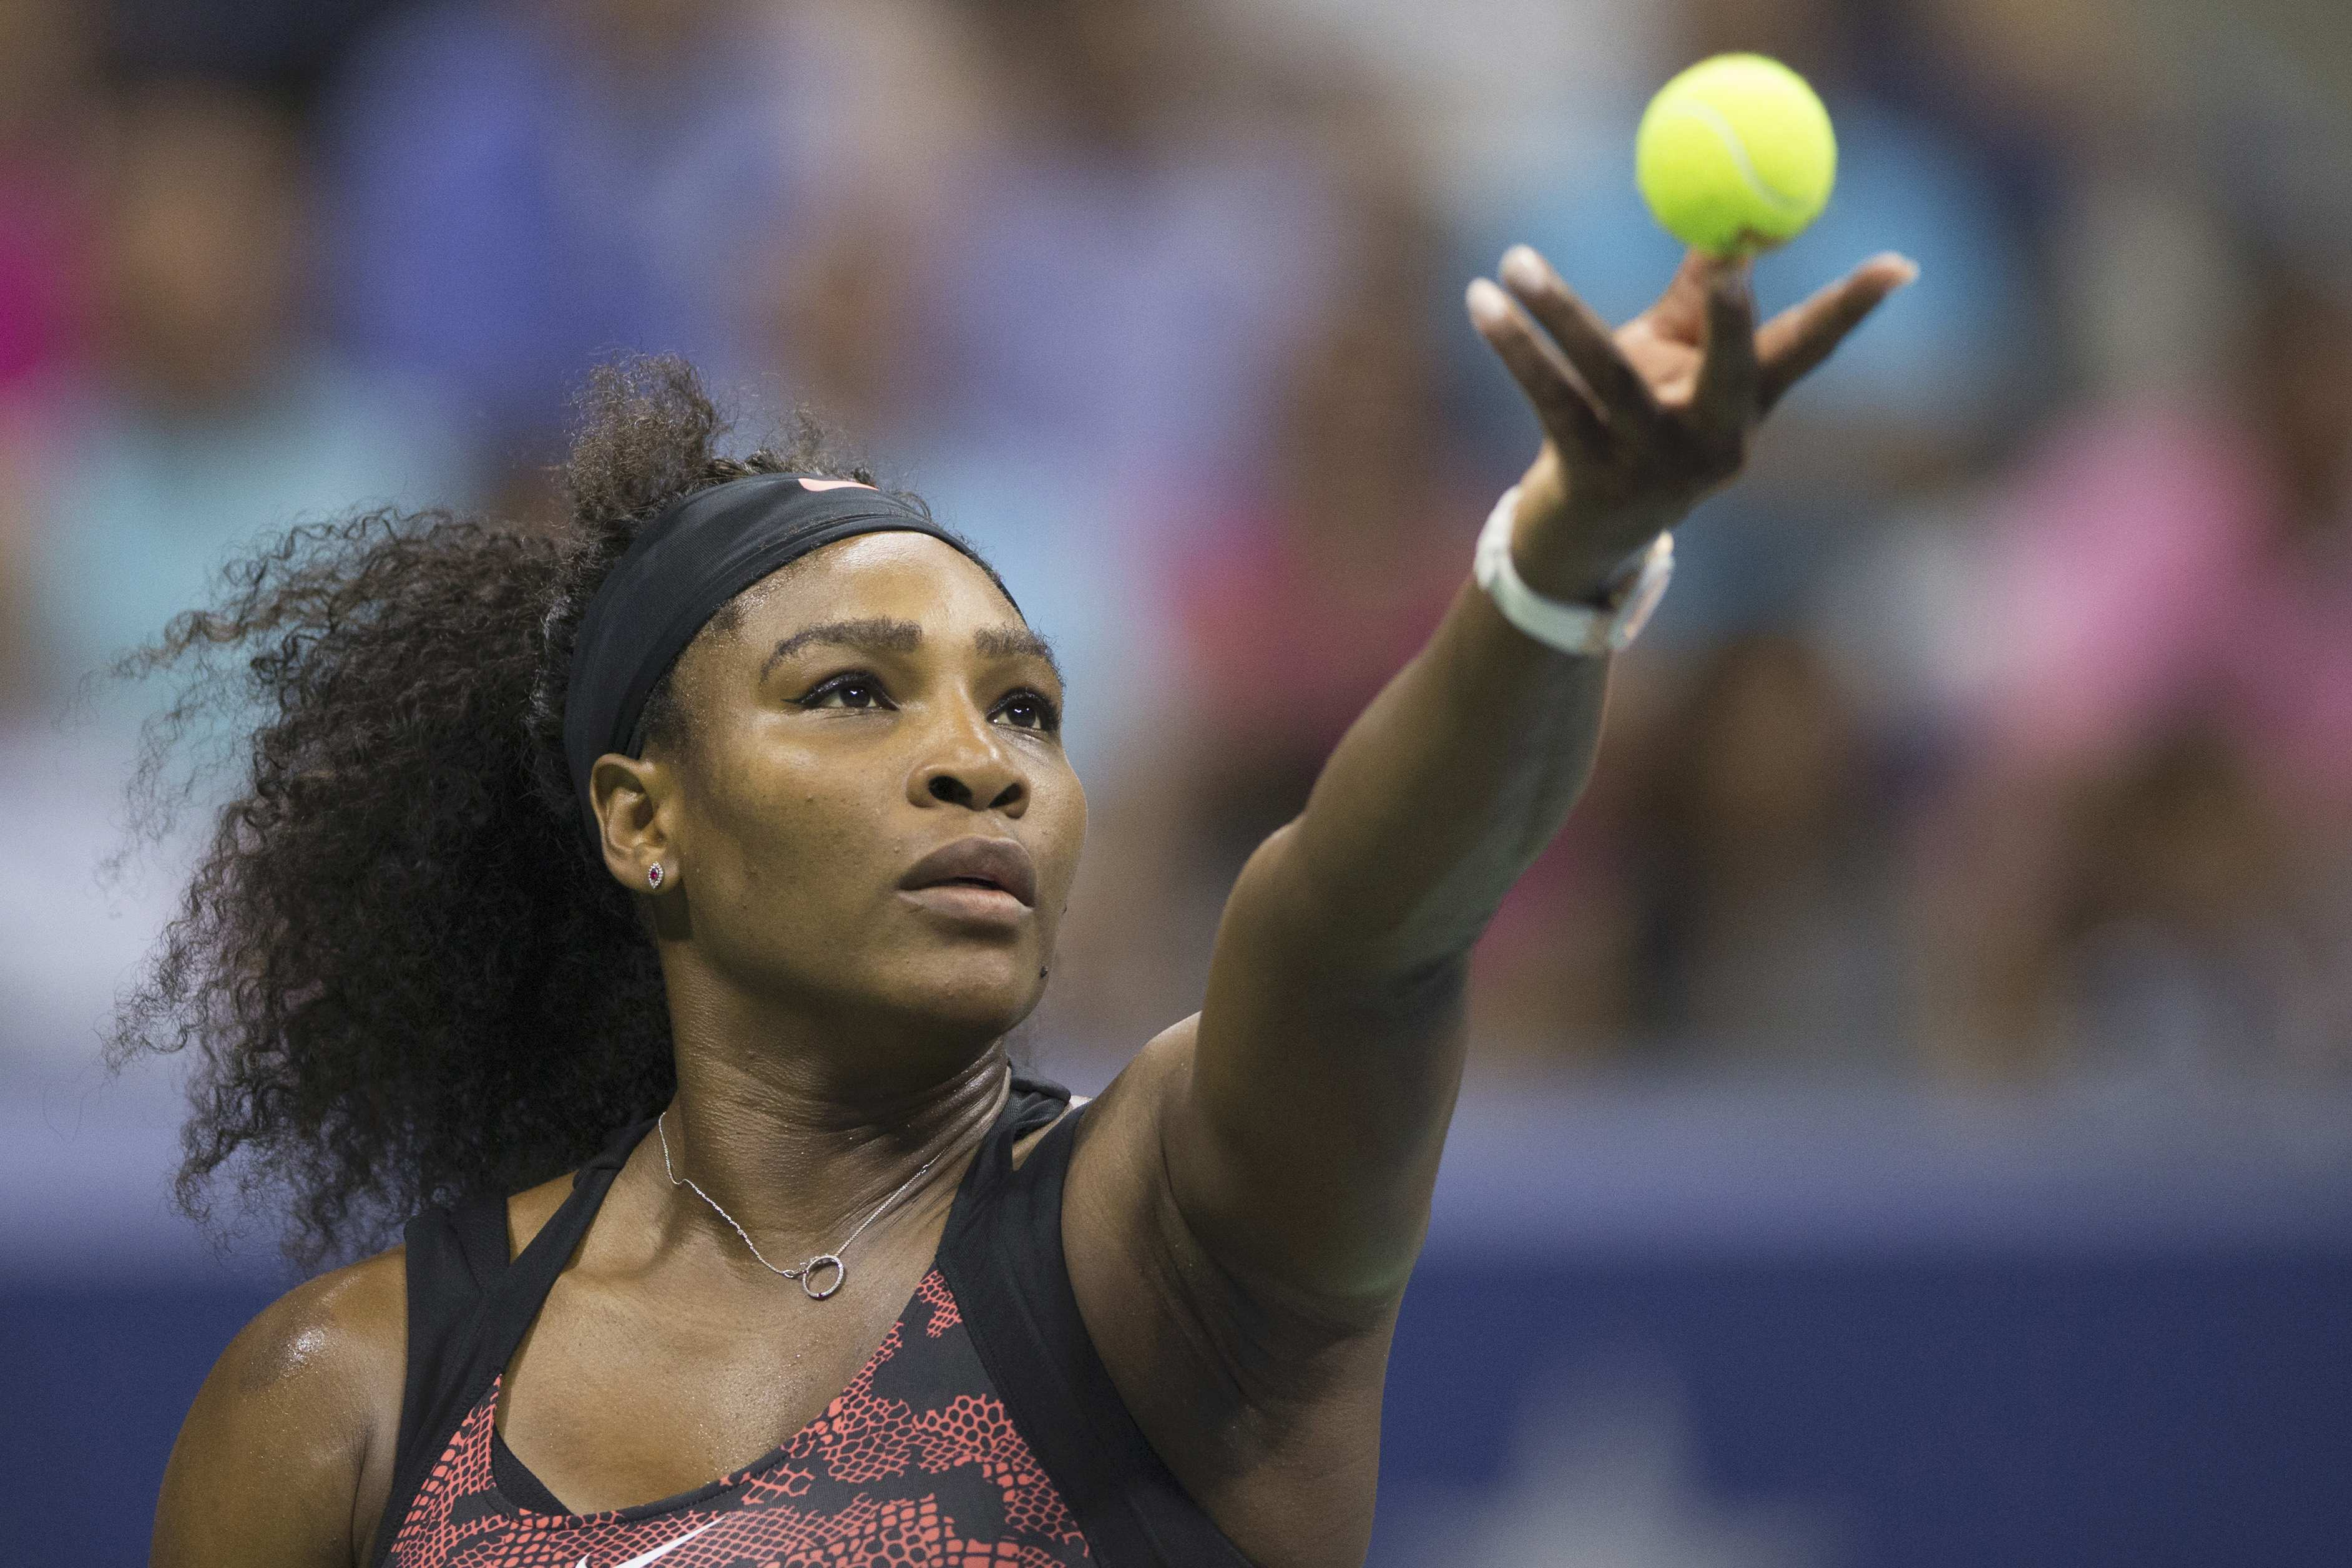 Serena Williams of the U.S serves to her sister and compatriot Venus Williams during their quarterfinals match at the U.S. Open, Sept 8. Carlo Allegri / Reuters.